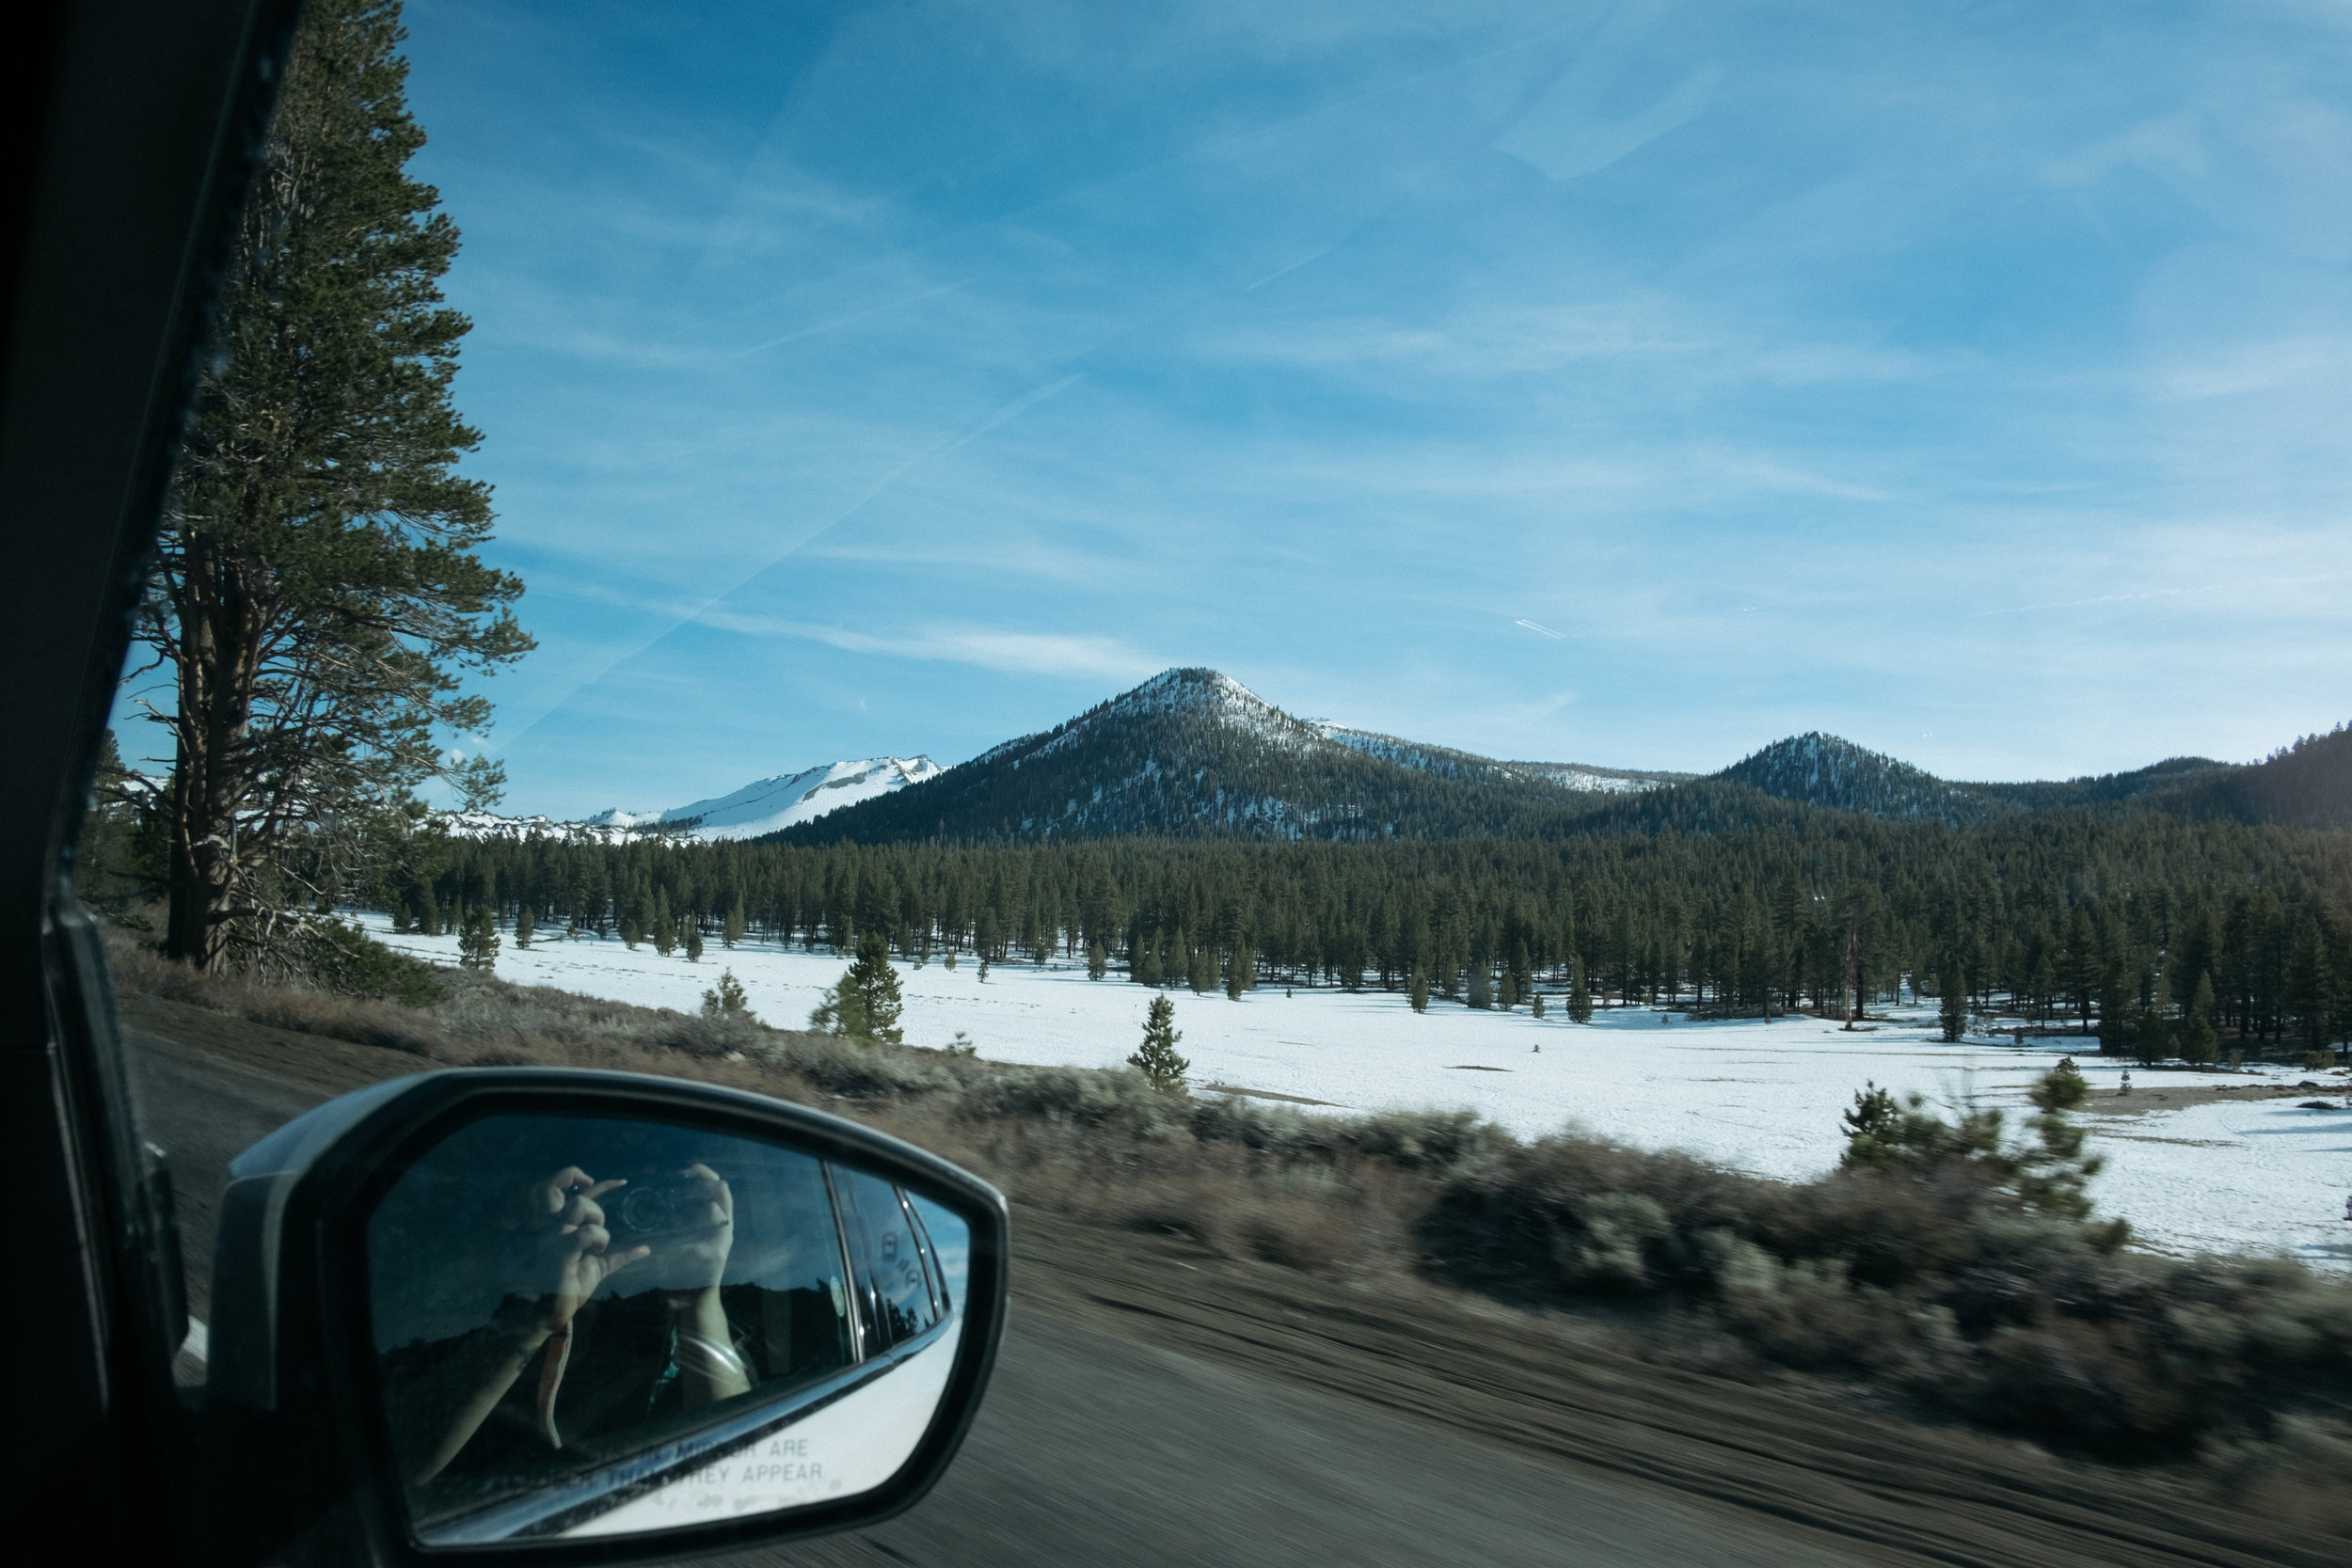 Snowy mountains and trees in California